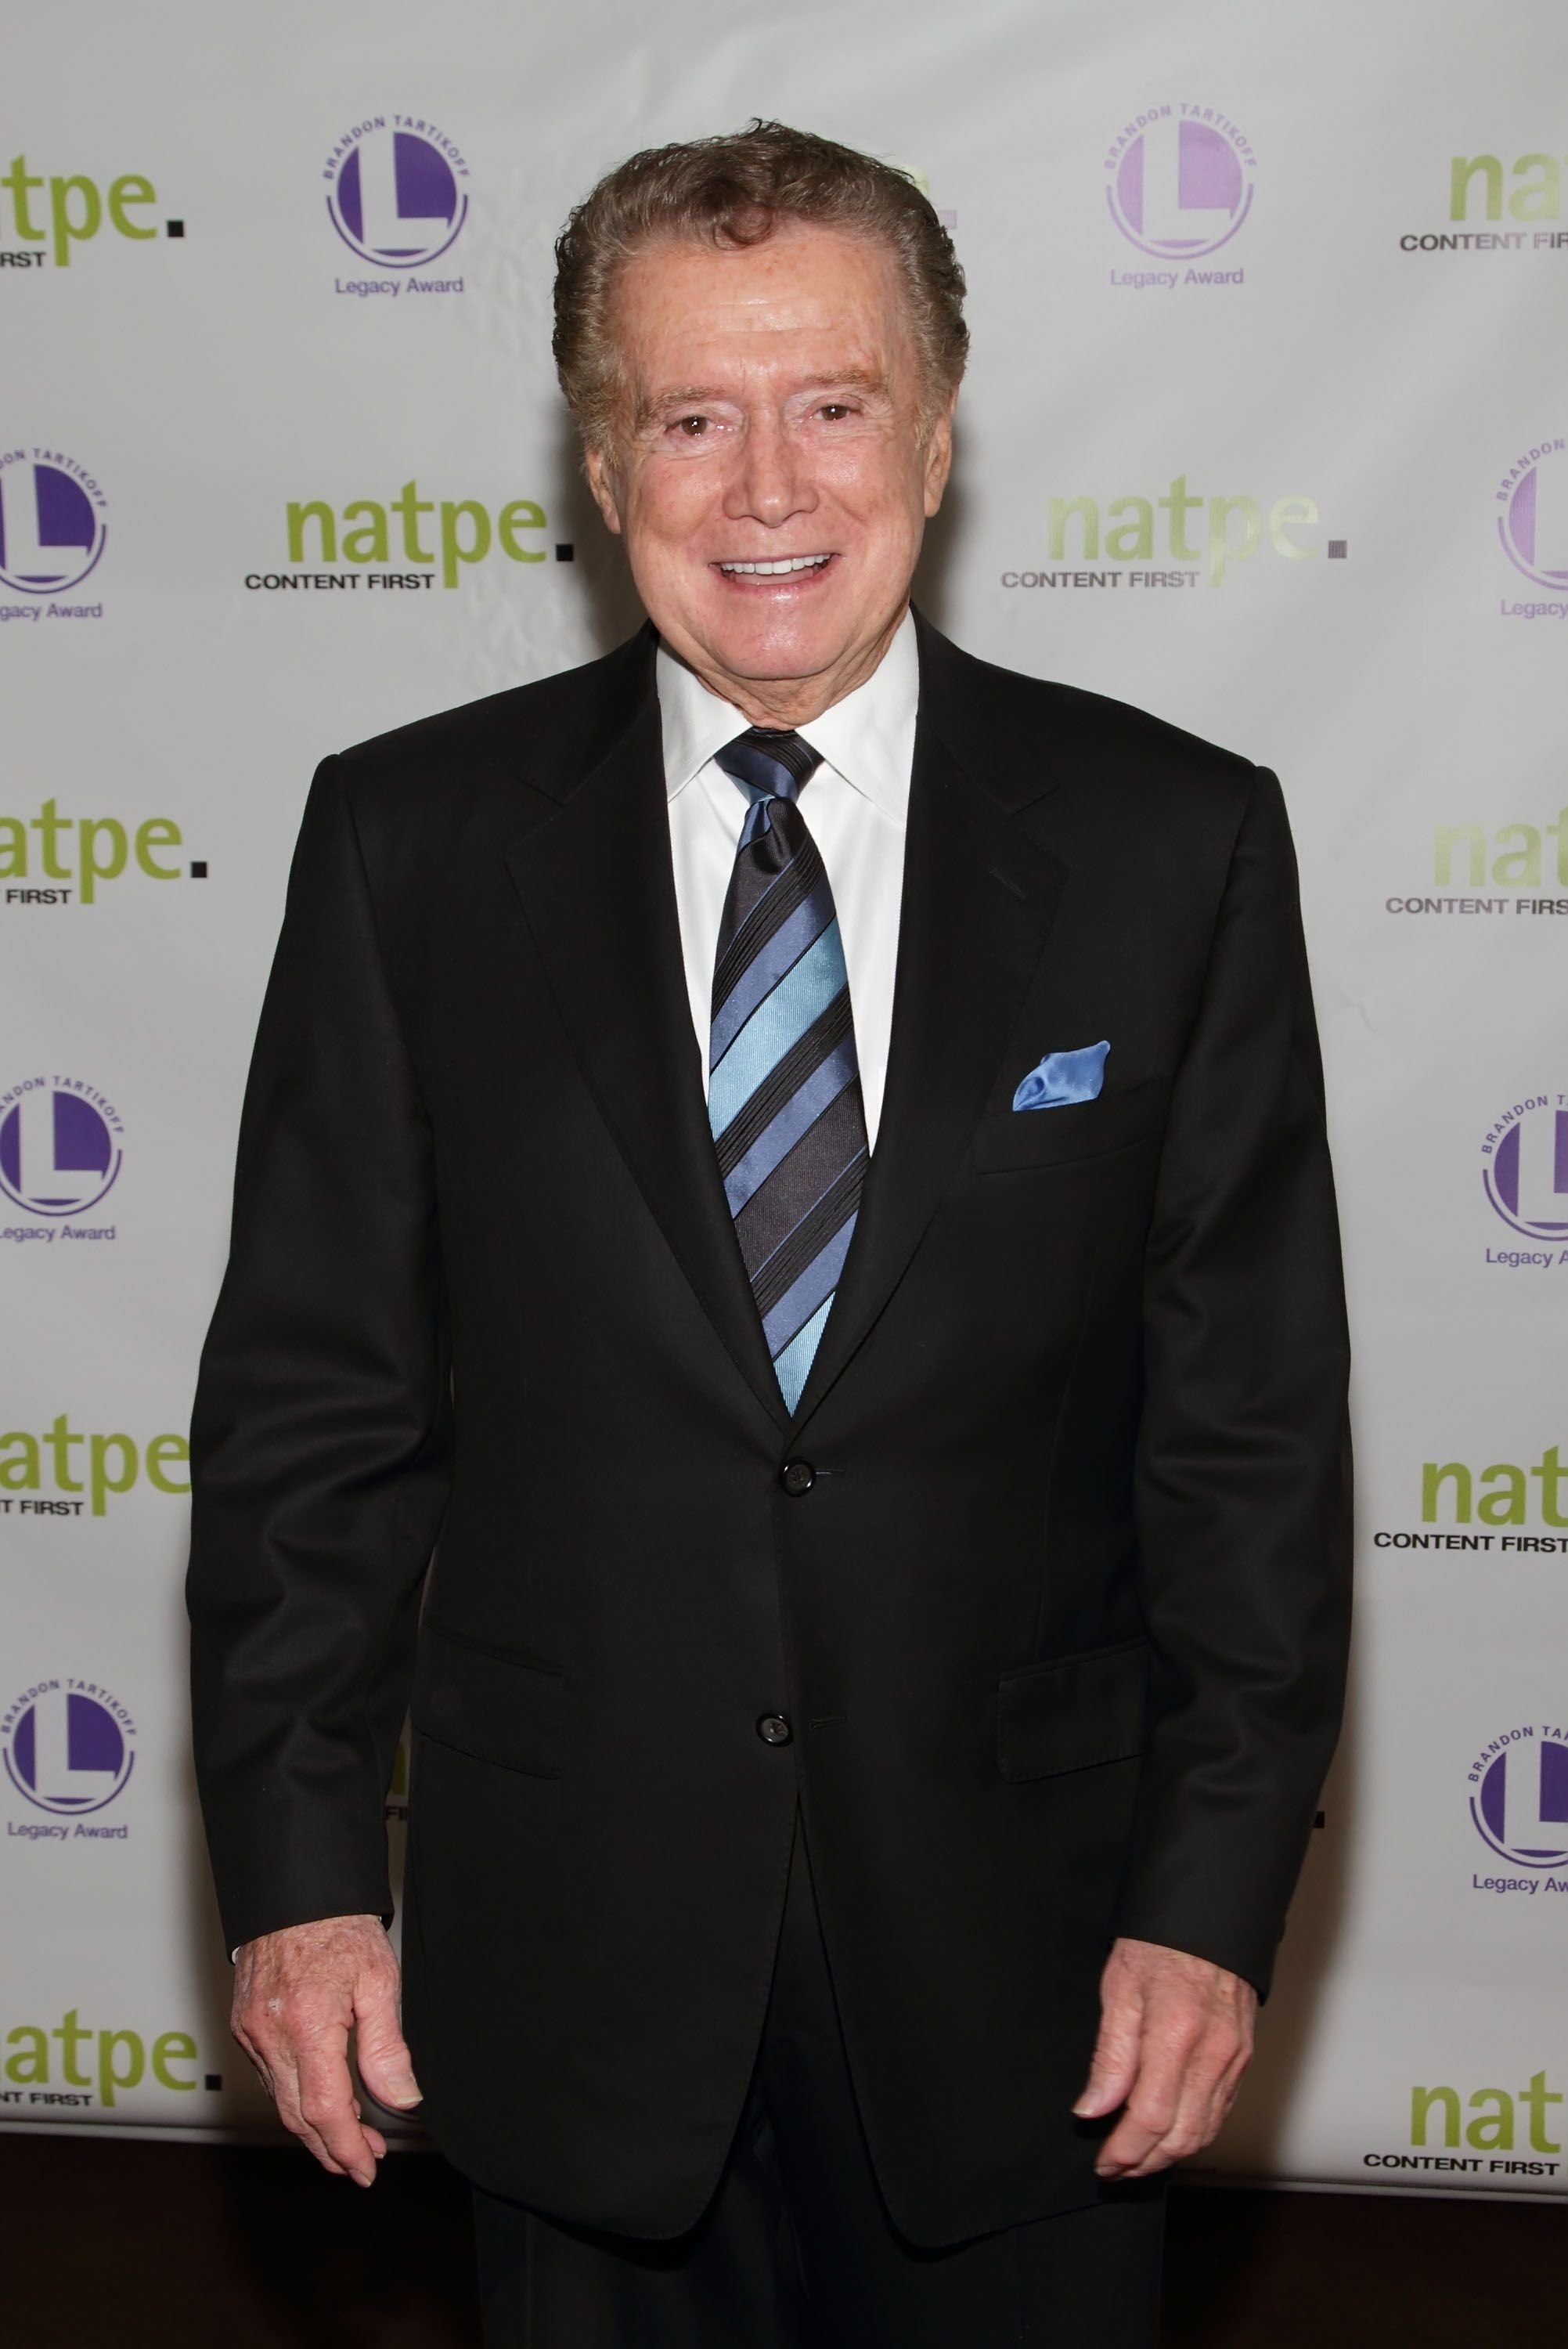 Fernseh-Moderator Regis Philbin bei der 8. jährlichen Verleihung der NATPE Brandon Tartikoff Legacy Awards im Fontainebleau Miami Beach in Miami Beach, Florida | Quelle: Alexander Tamargo/Getty Images